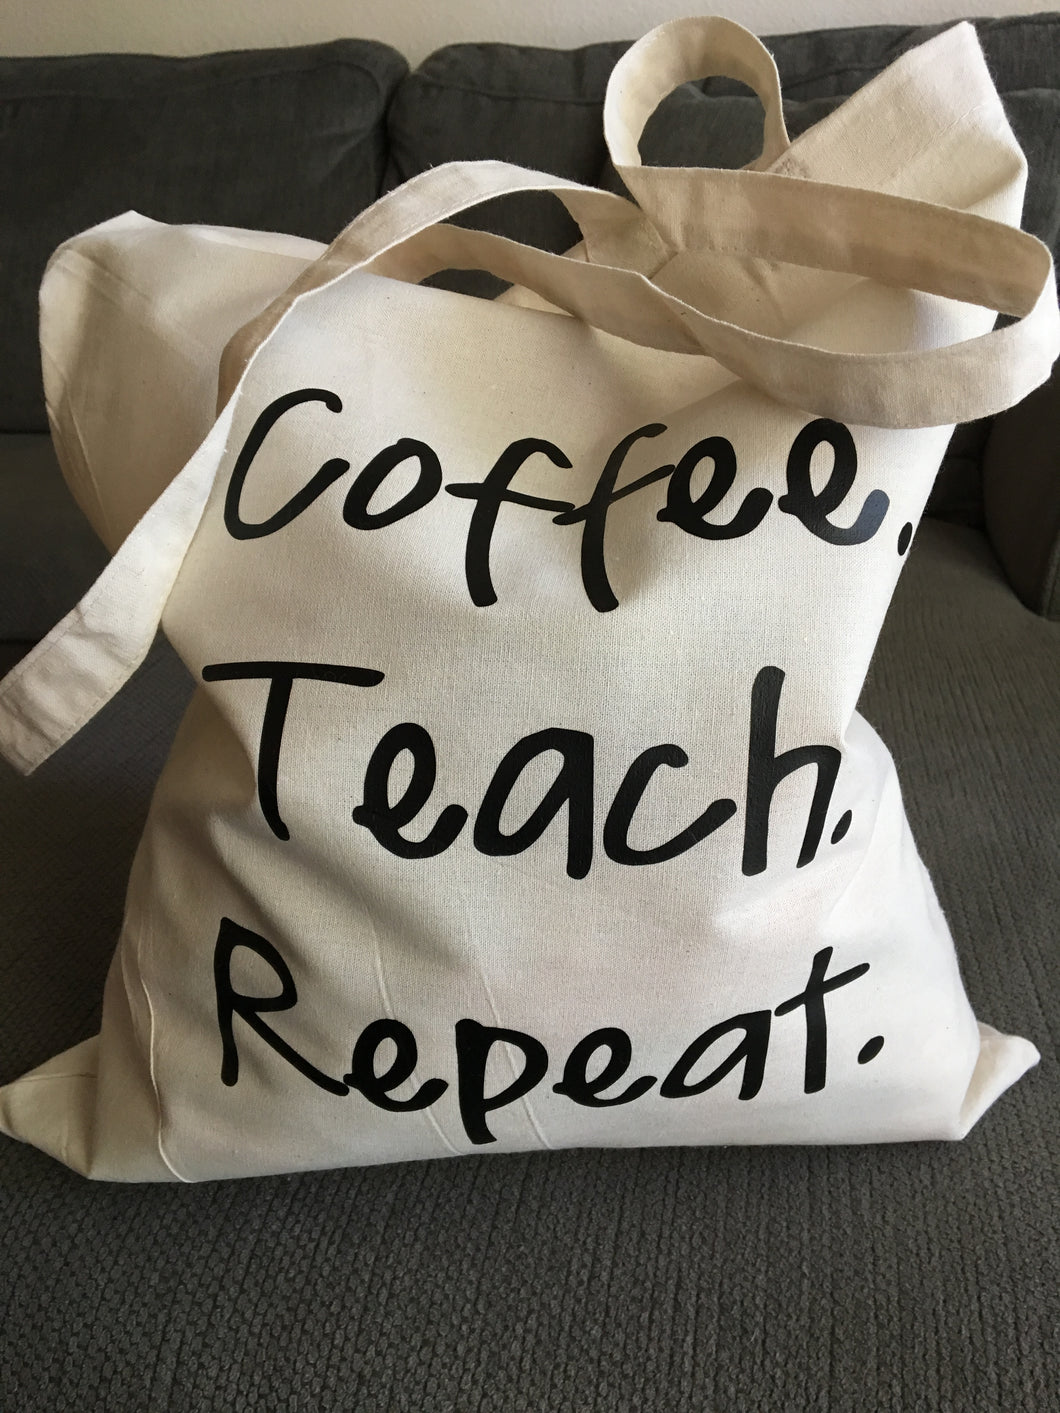 Teacher Tote Bag, Coffee Teach Repeat, School Bag